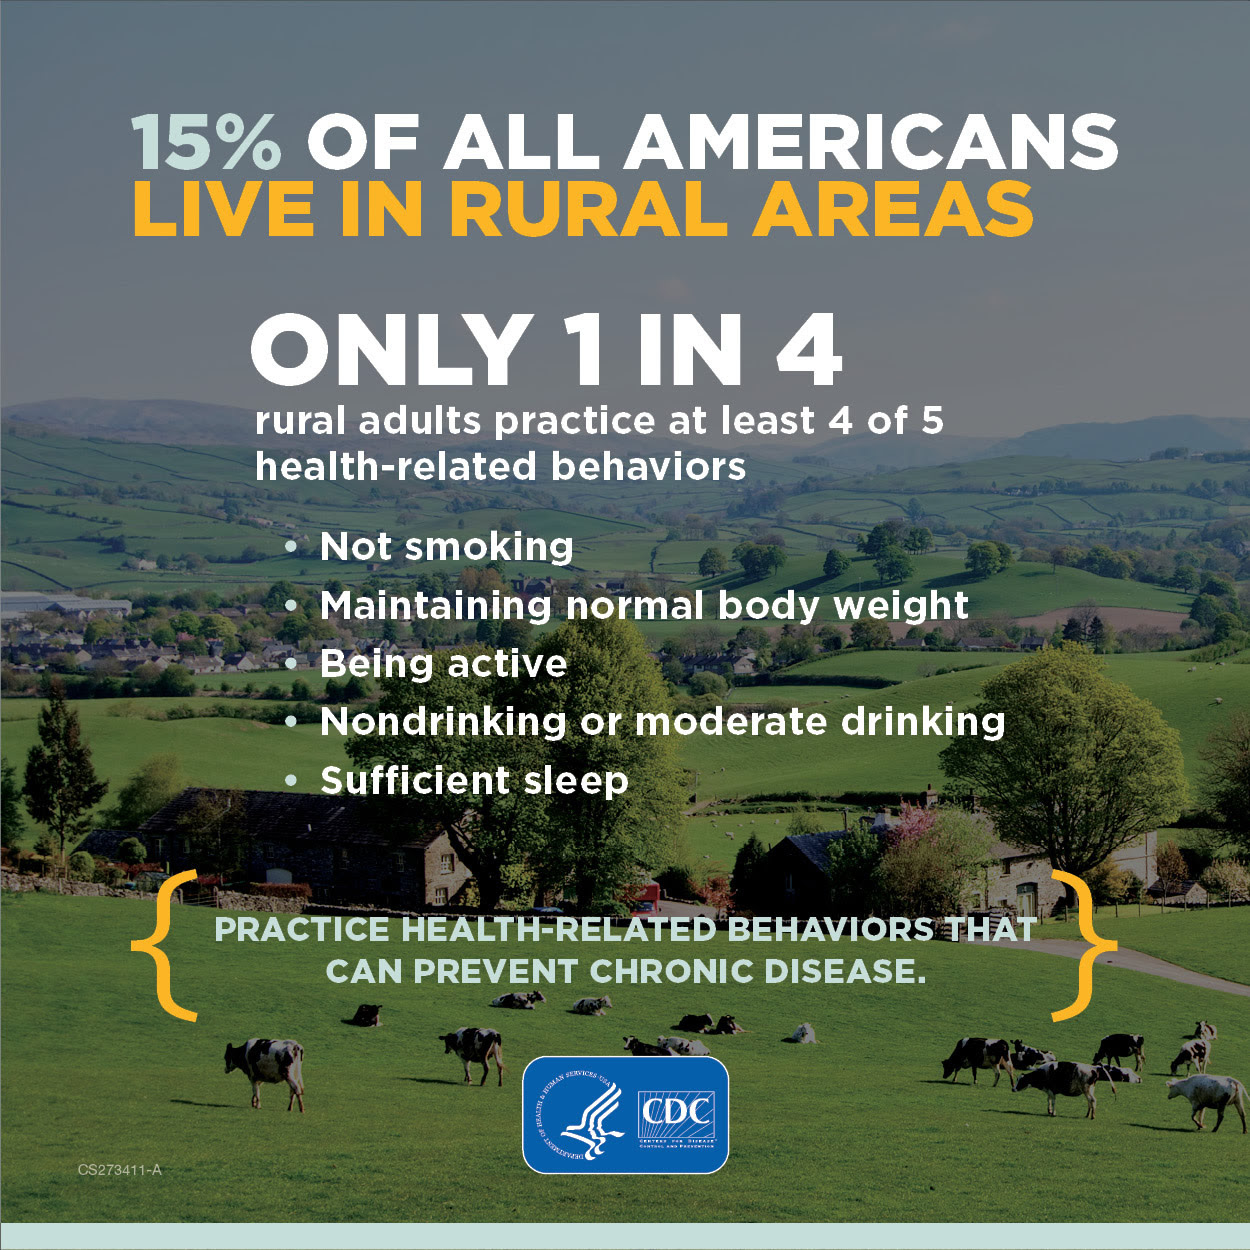 15% 0f all Americans live in rural areas. Only 1 in 4 practice 4 of 5 health related behaviors including not smoking, maintaining normal body weight, being active, nondrinking and sufficient sleep.